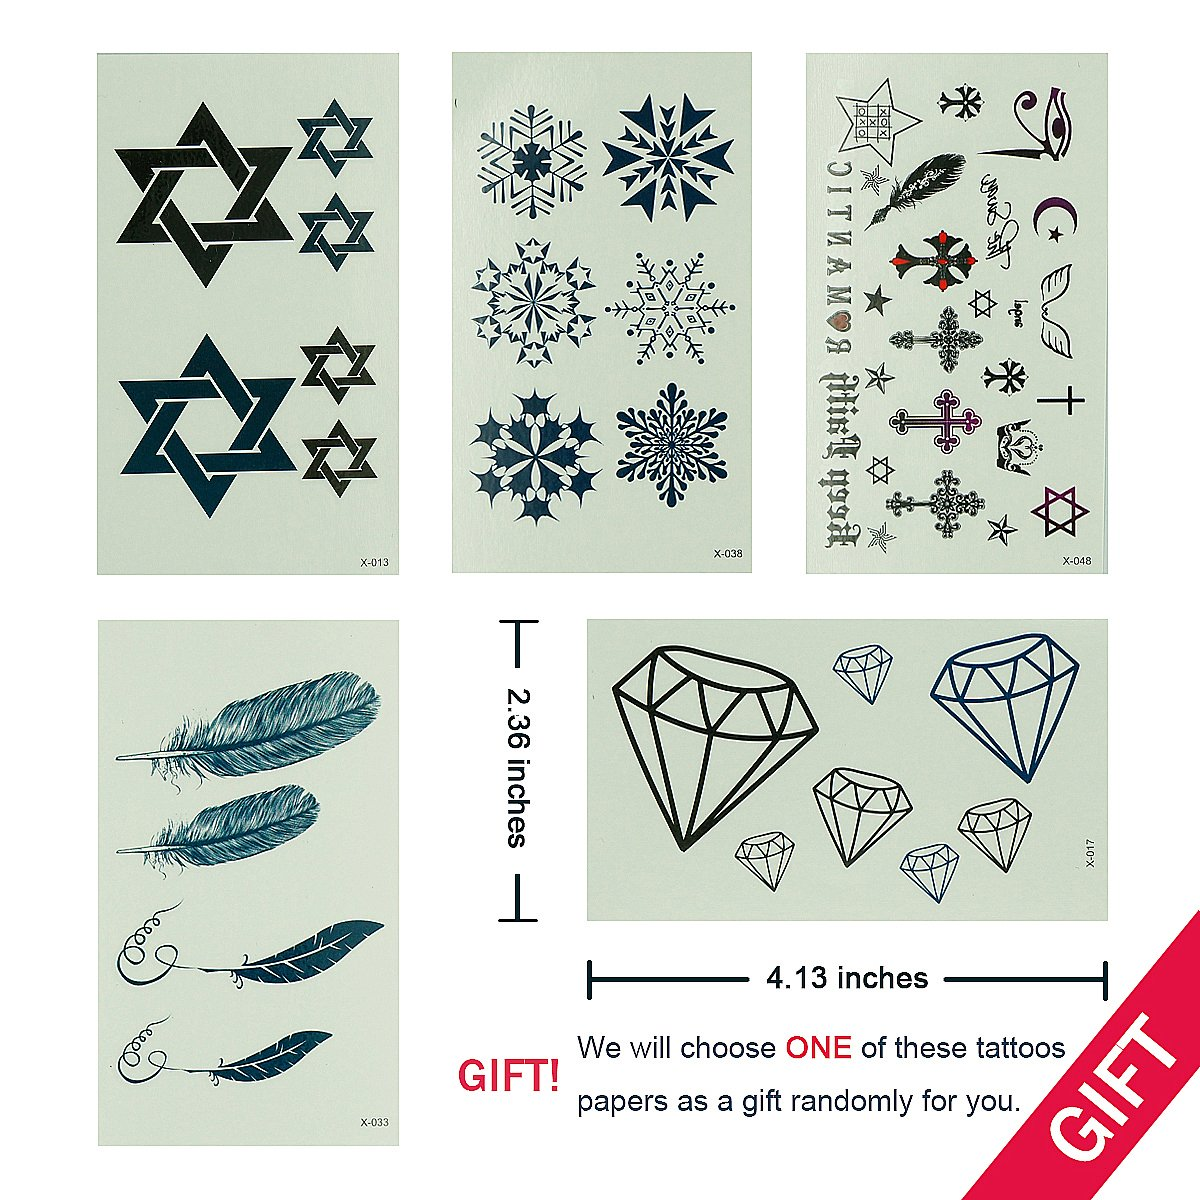 GIFT!!Tastto 6 Sheets Henna Body Paints Temporary Tattoos Black Lace Stickers for Girls and Women with GIFT by Tastto (Image #2)